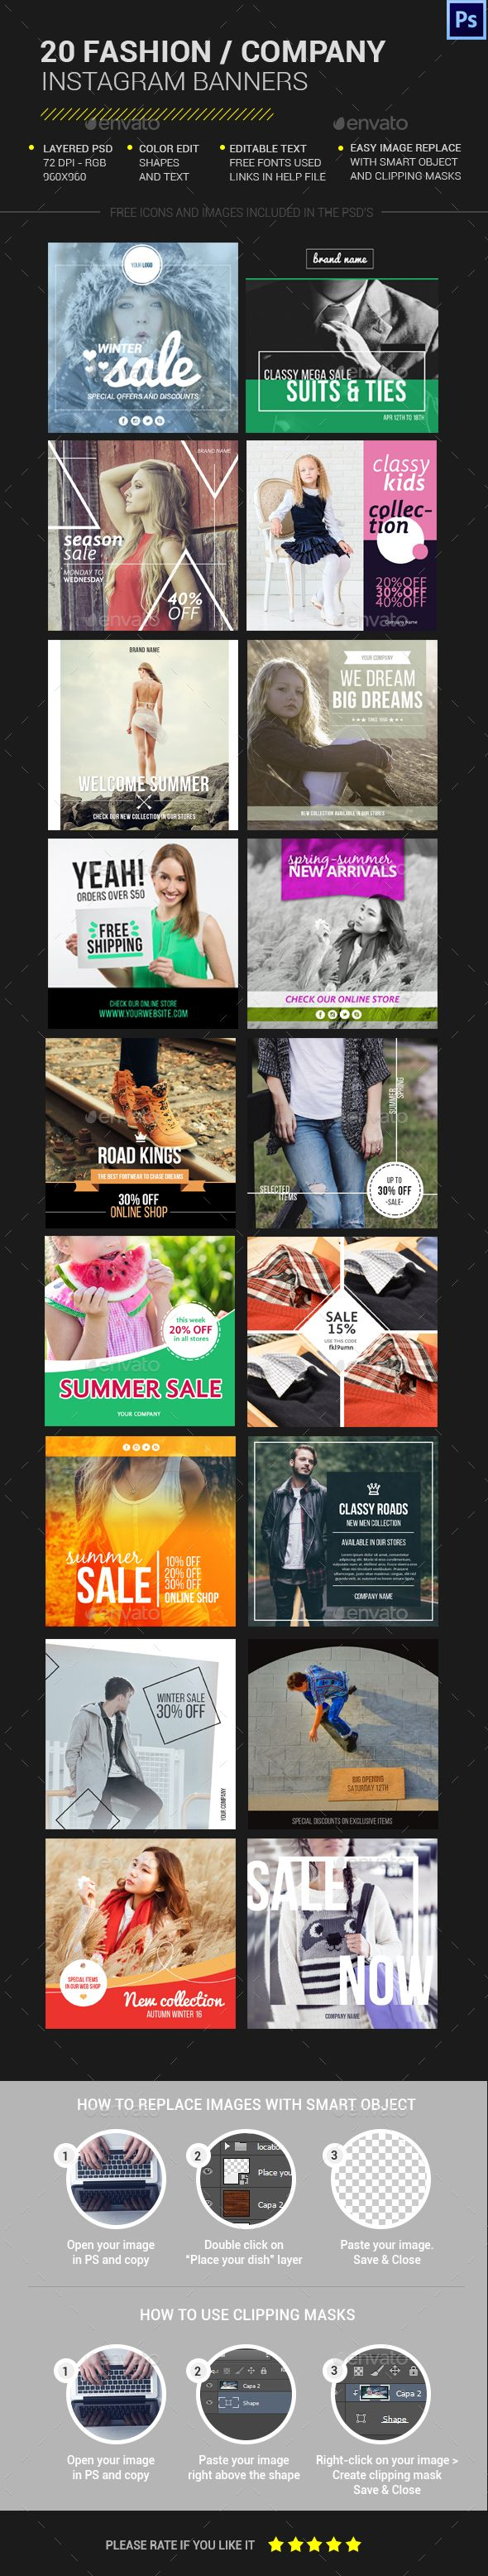 20 Fashion Instagram Banners Template PSD. Download here: http://graphicriver.net/item/20-fashion-instagram-banners/15612534?ref=ksioks